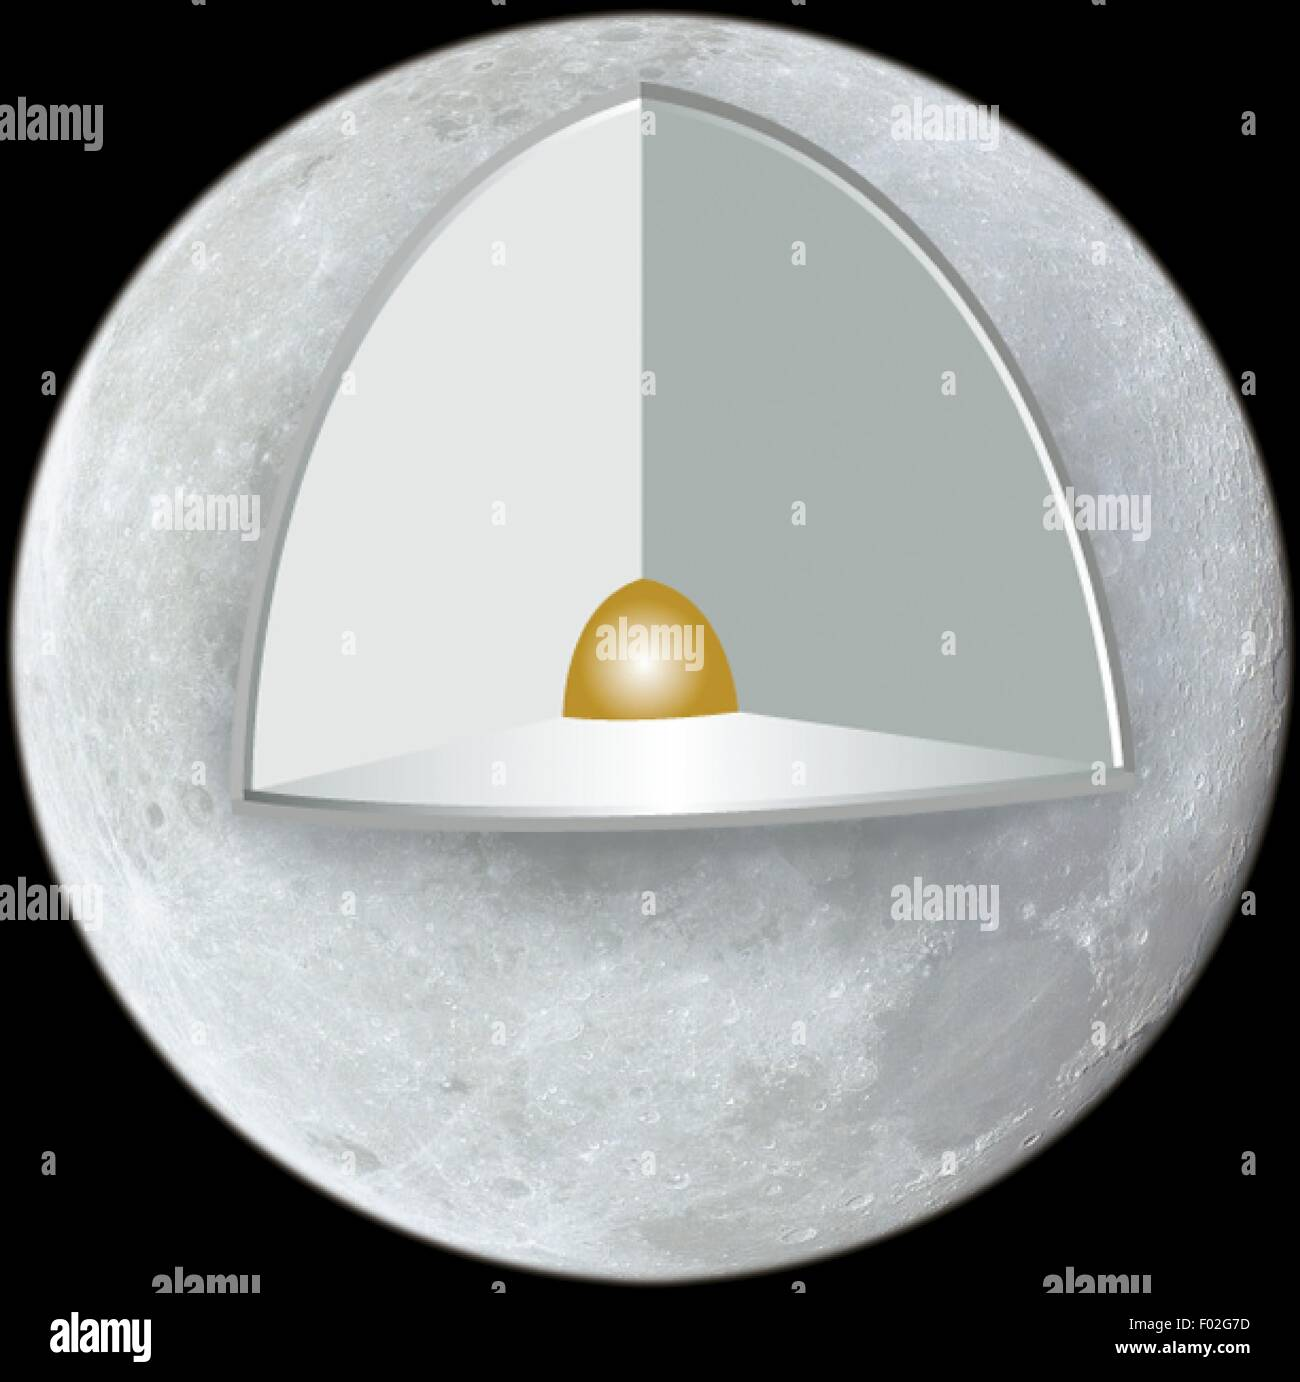 hight resolution of lunar structure crust mantle metallic core color diagram